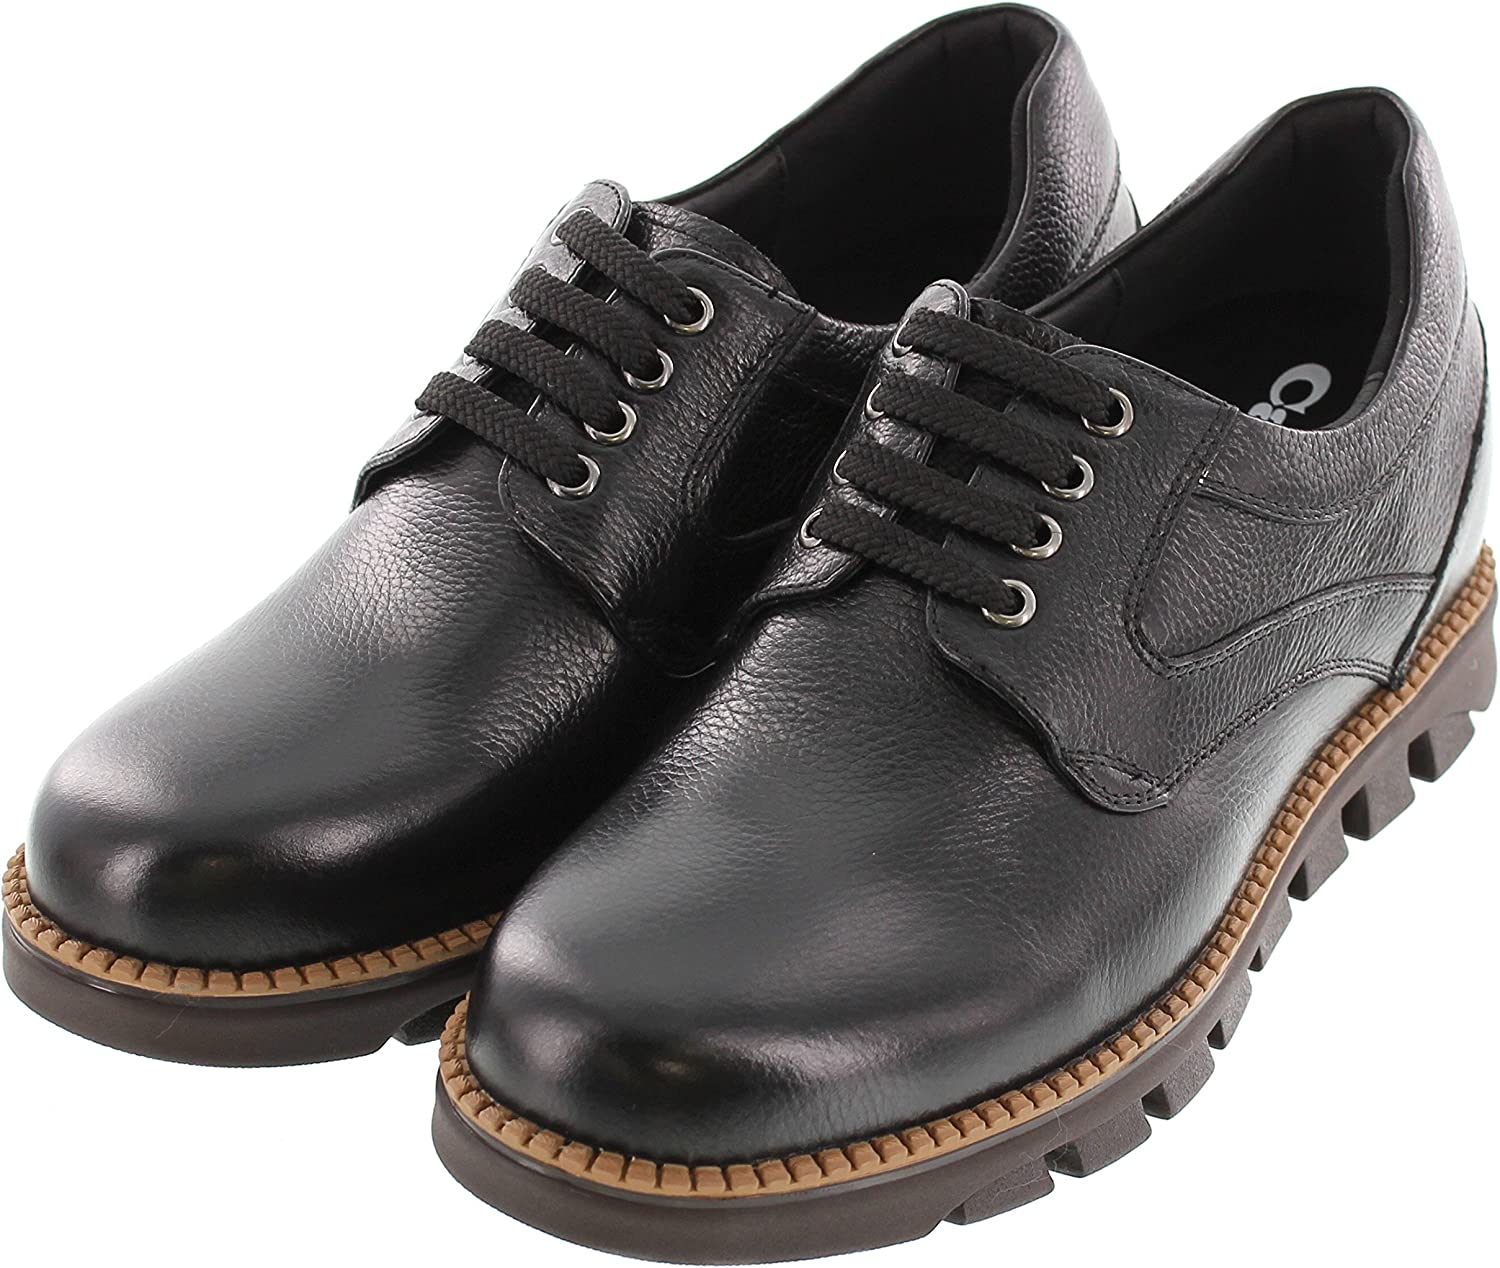 G63812 CALTO Mens Invisible Height Increasing Elevator Shoes 3 Inches Taller Black Leather Pebble Grain Leather Lace-up Casual Shoes